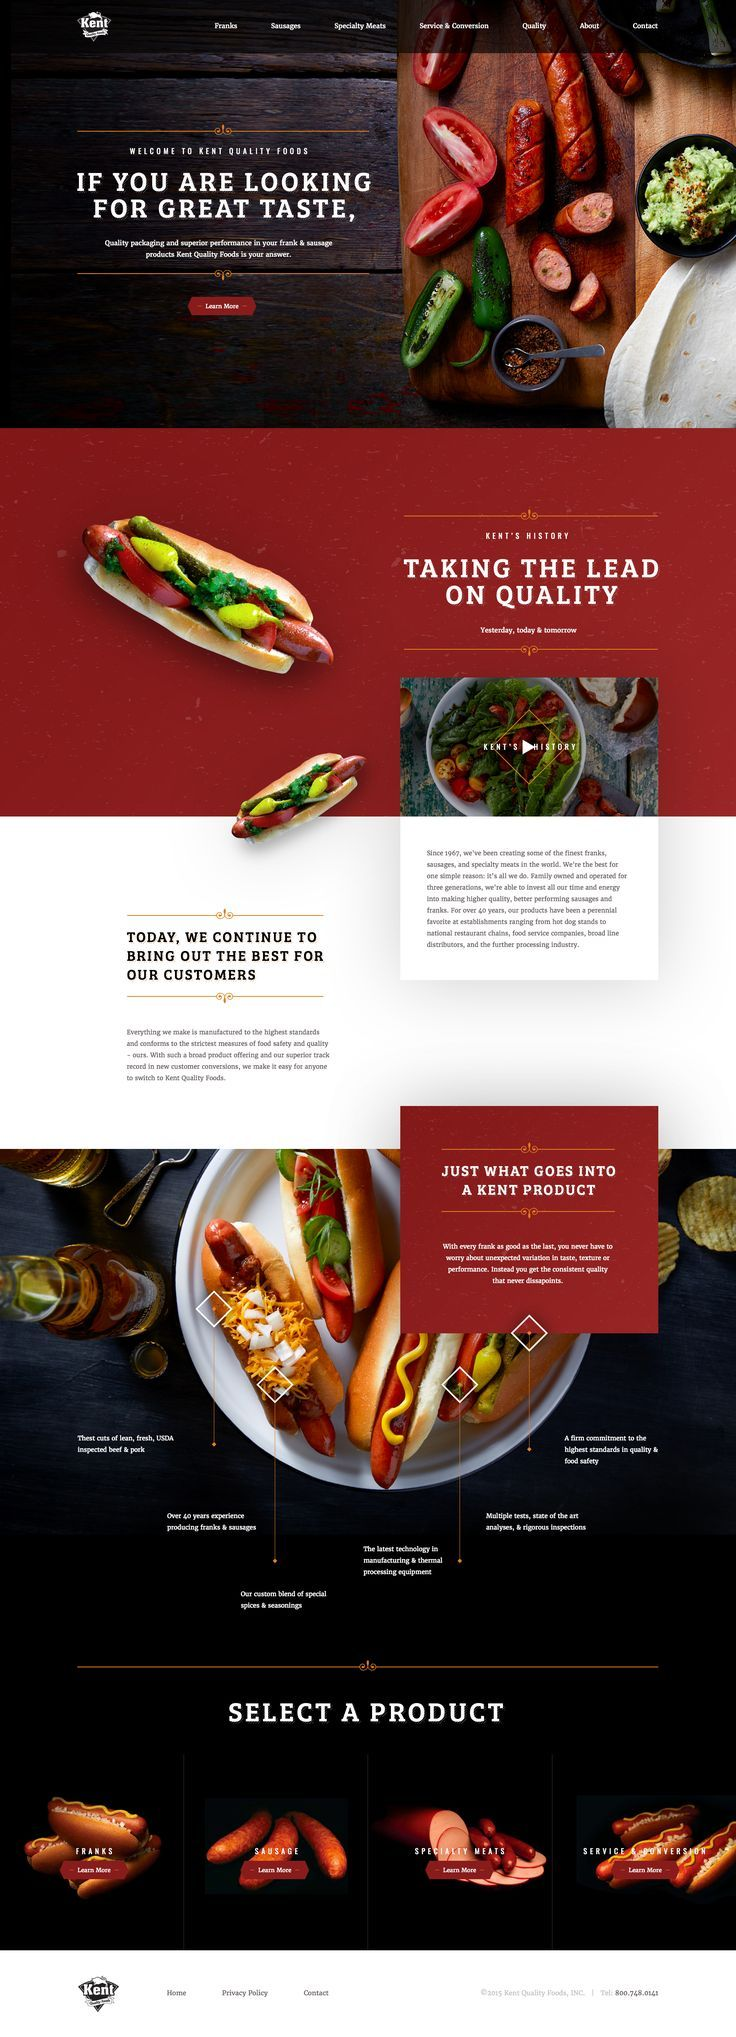 love this site and the hot dog menu :)